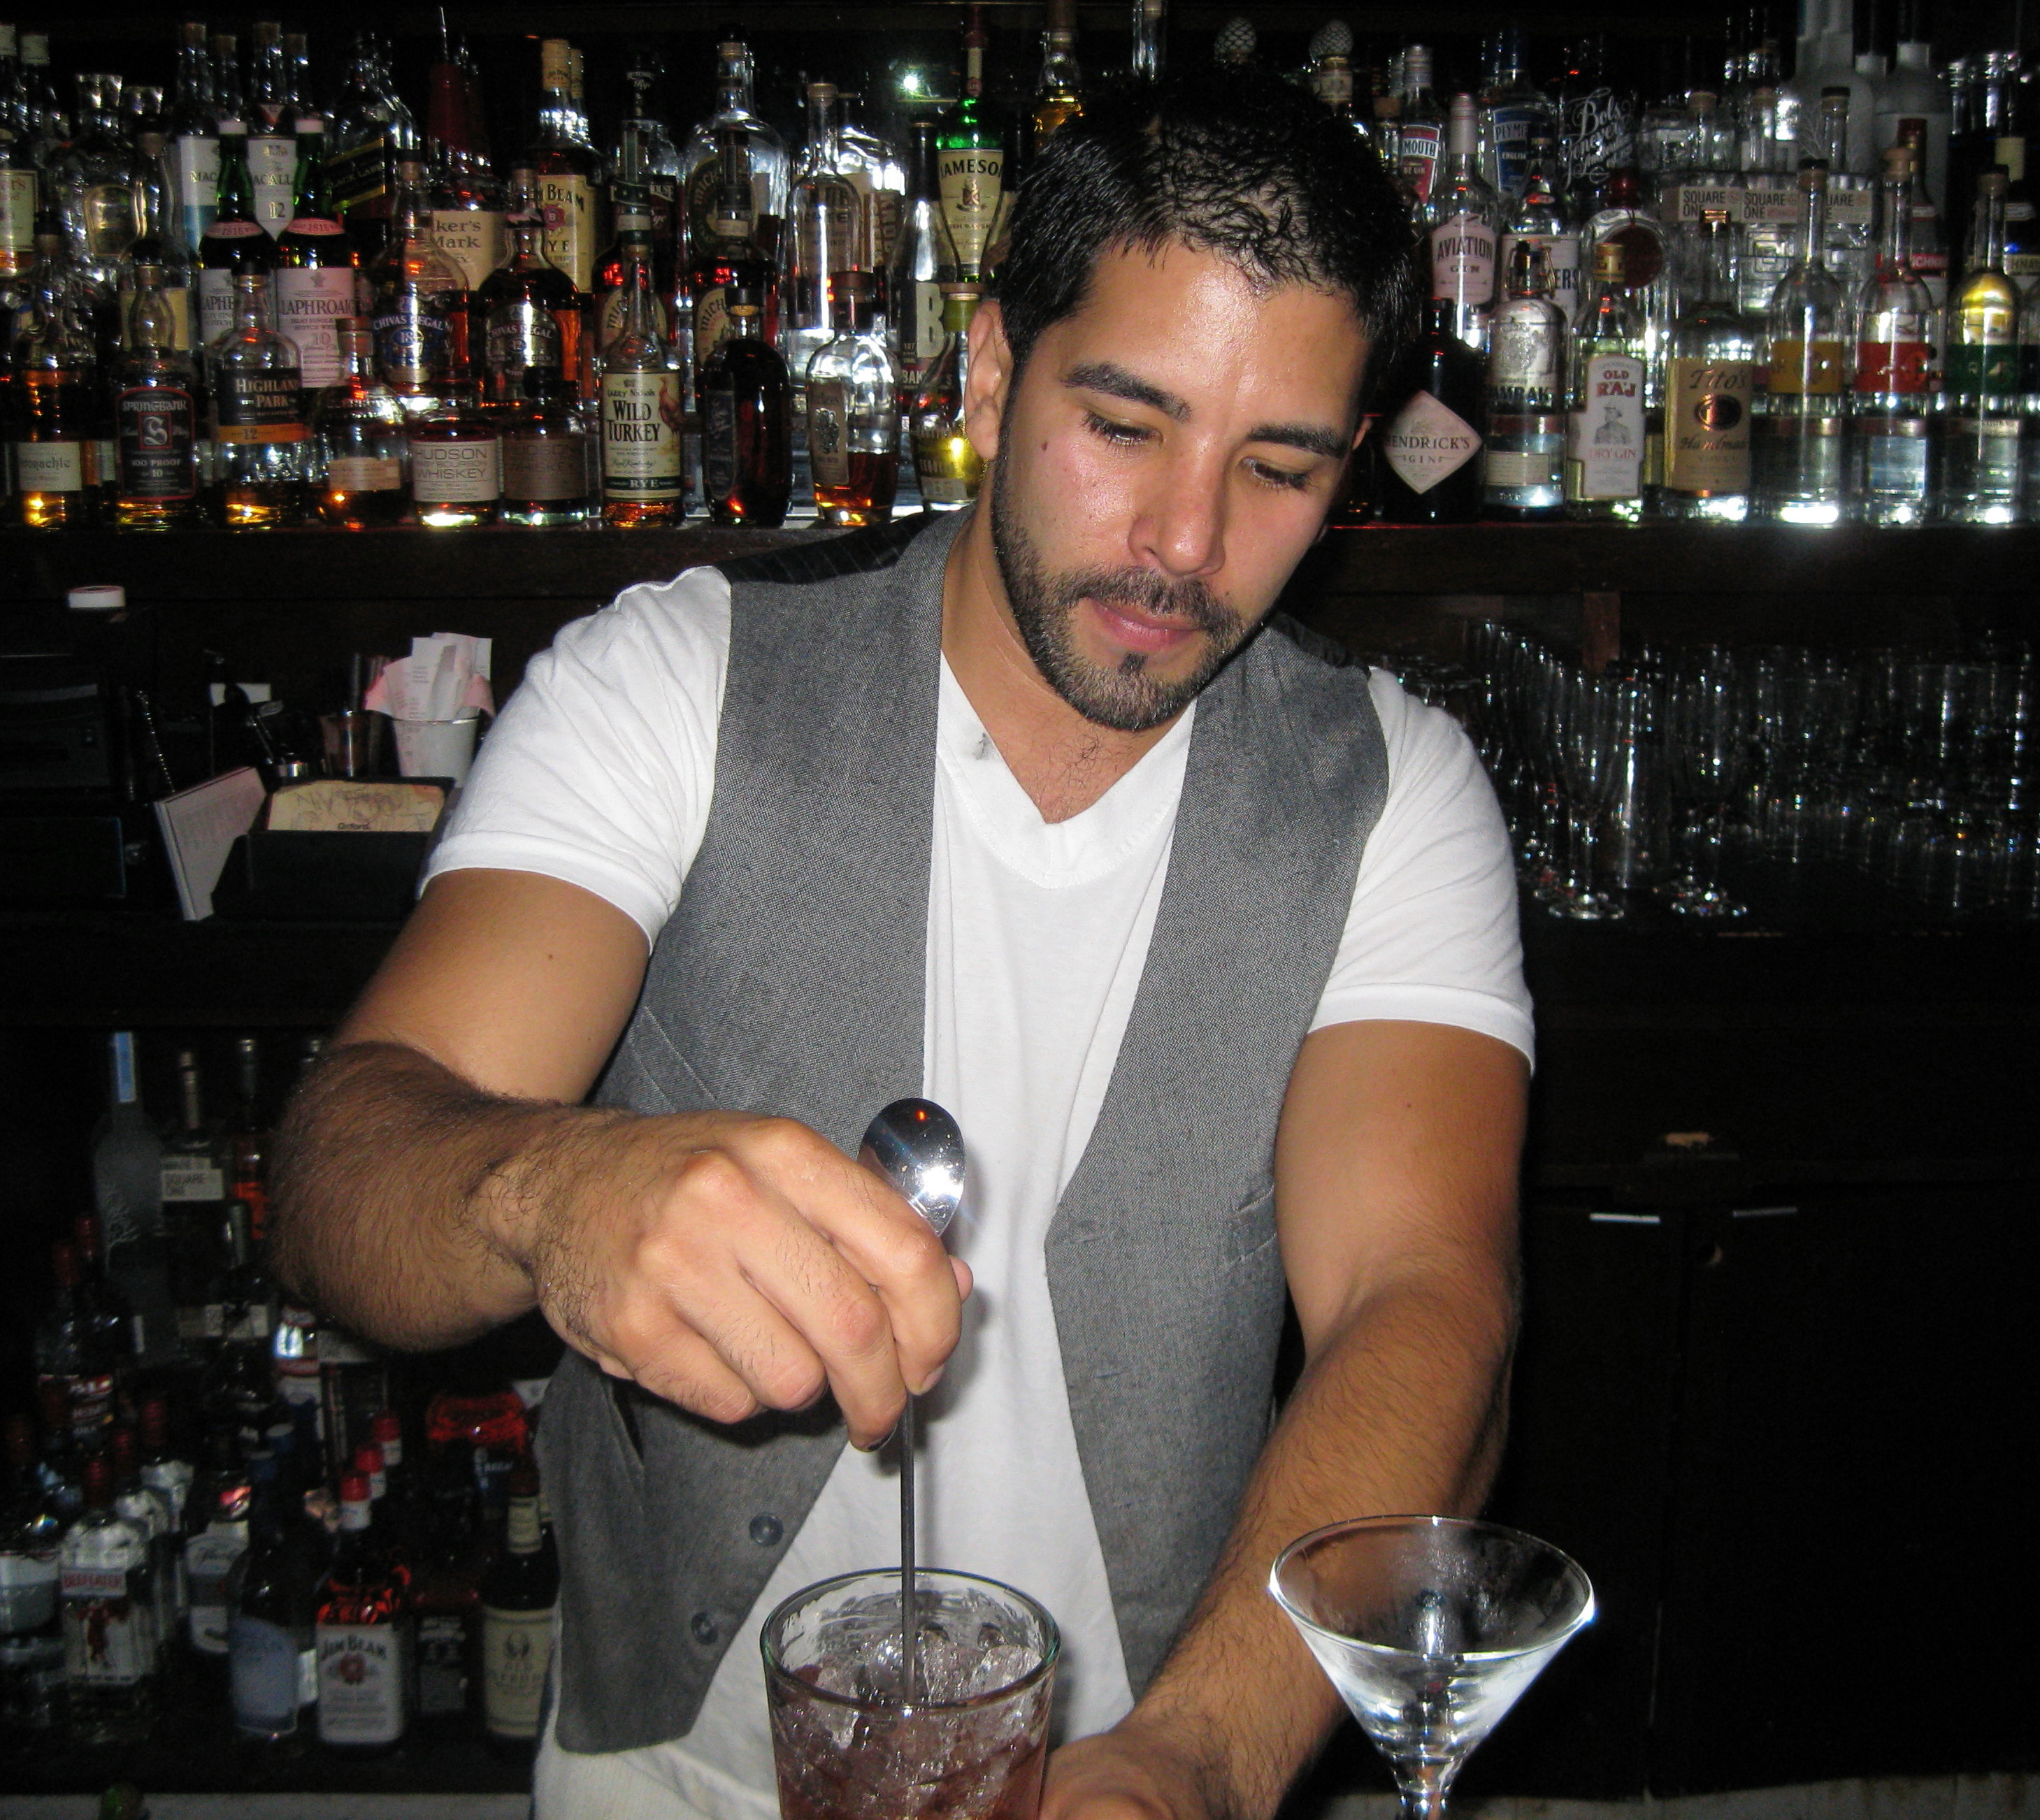 Hot Bartender Crawl in DTLA | The Minty